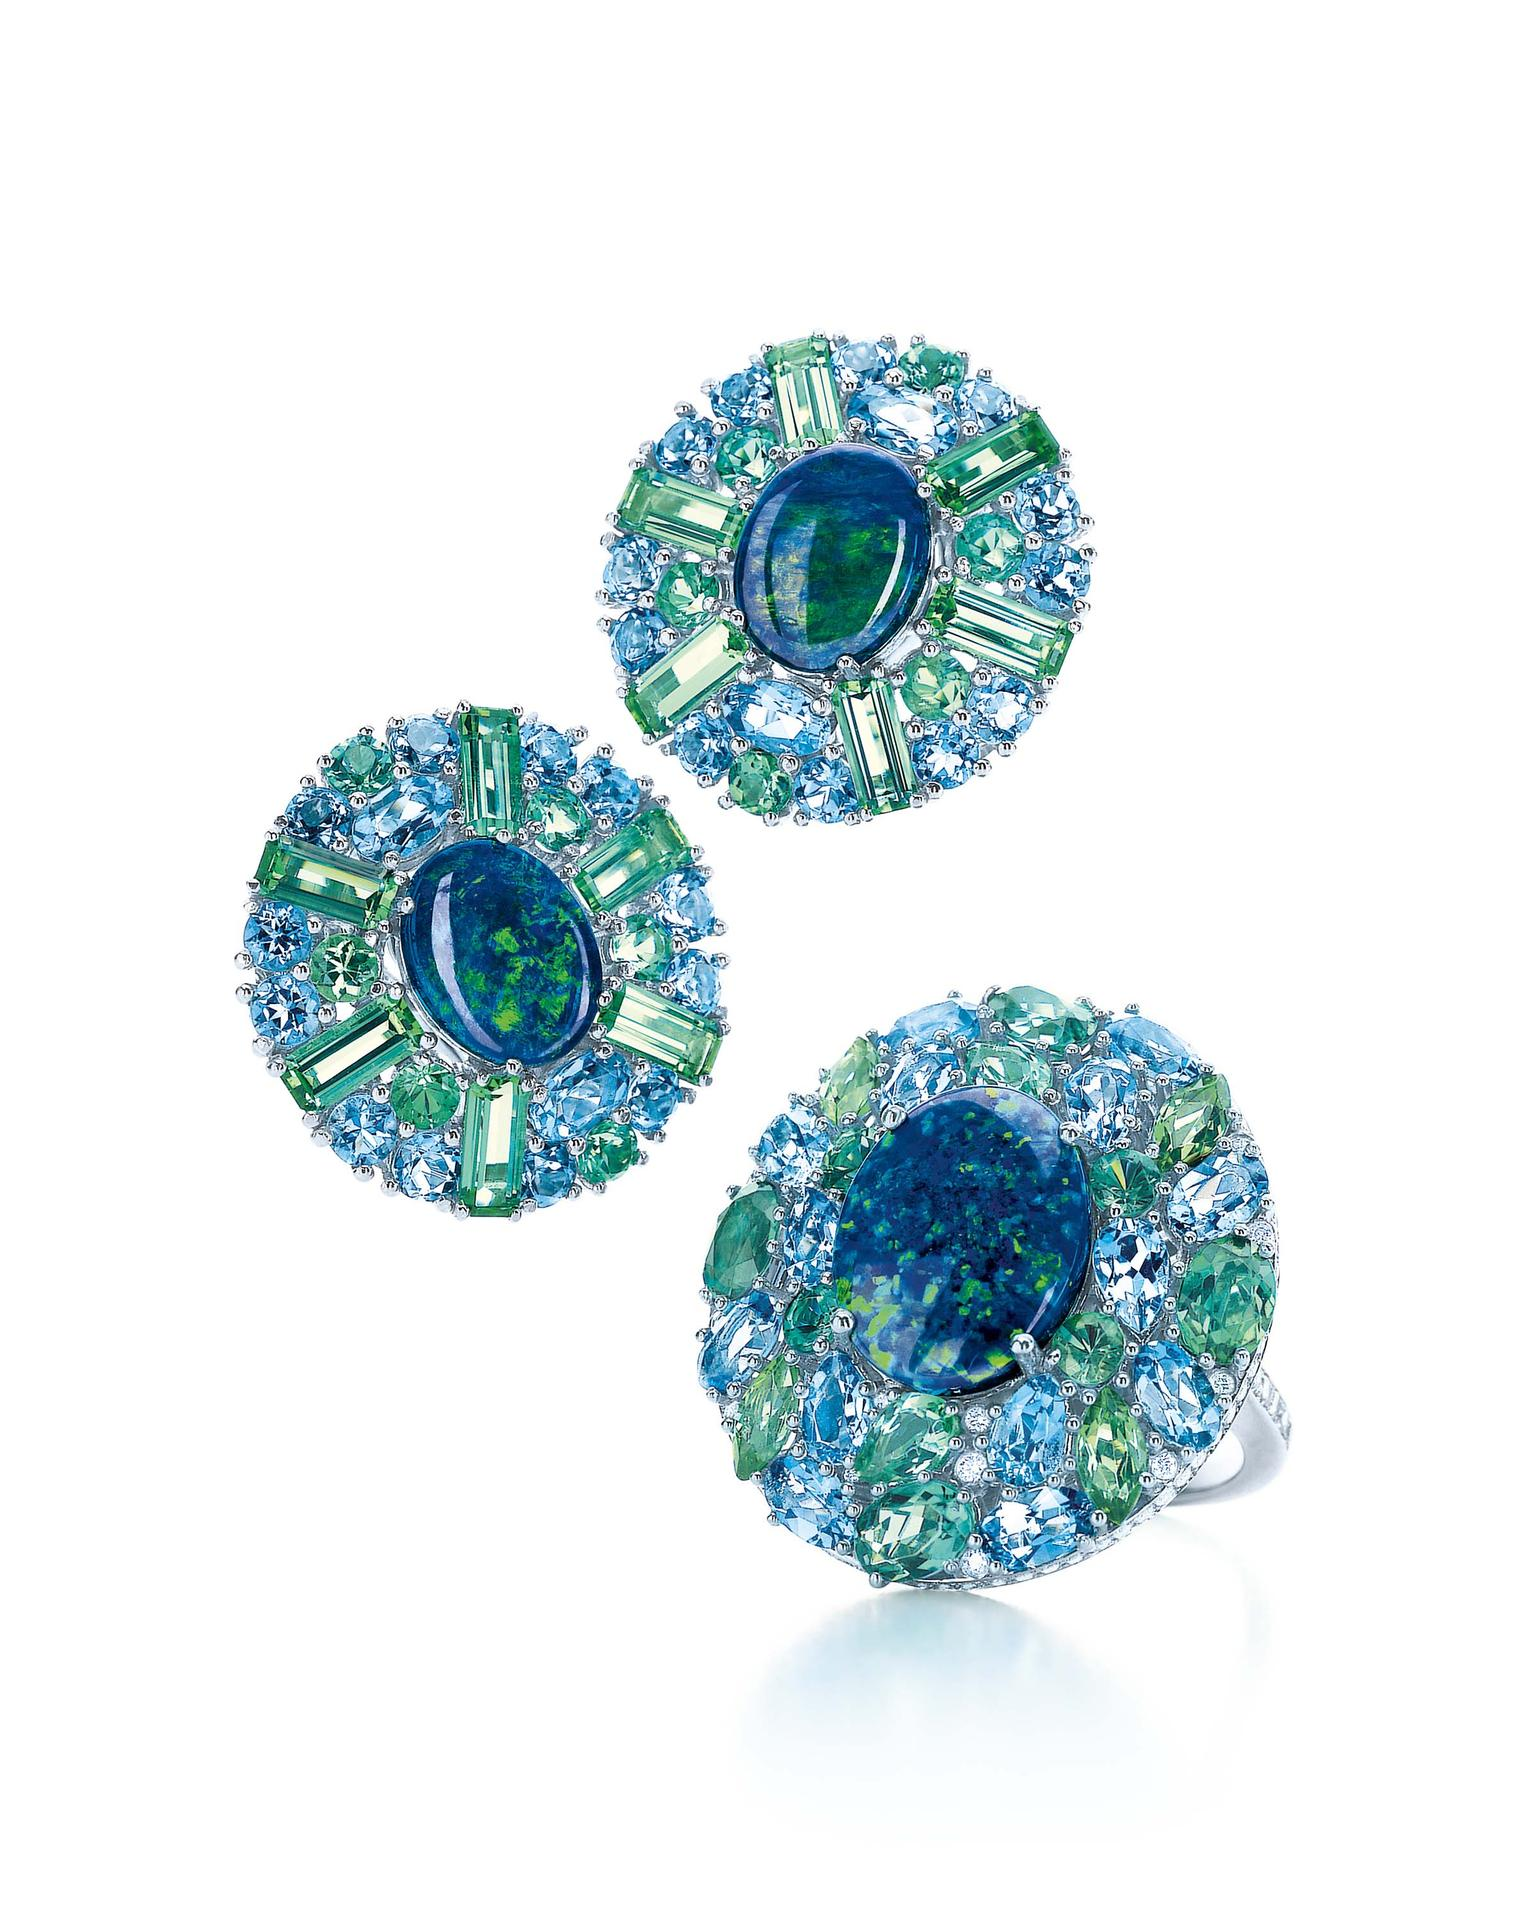 Tiffany & Co. Blue Book Collection black opal, tourmaline and aquamarine earrings and ring set in platinum (£POA)